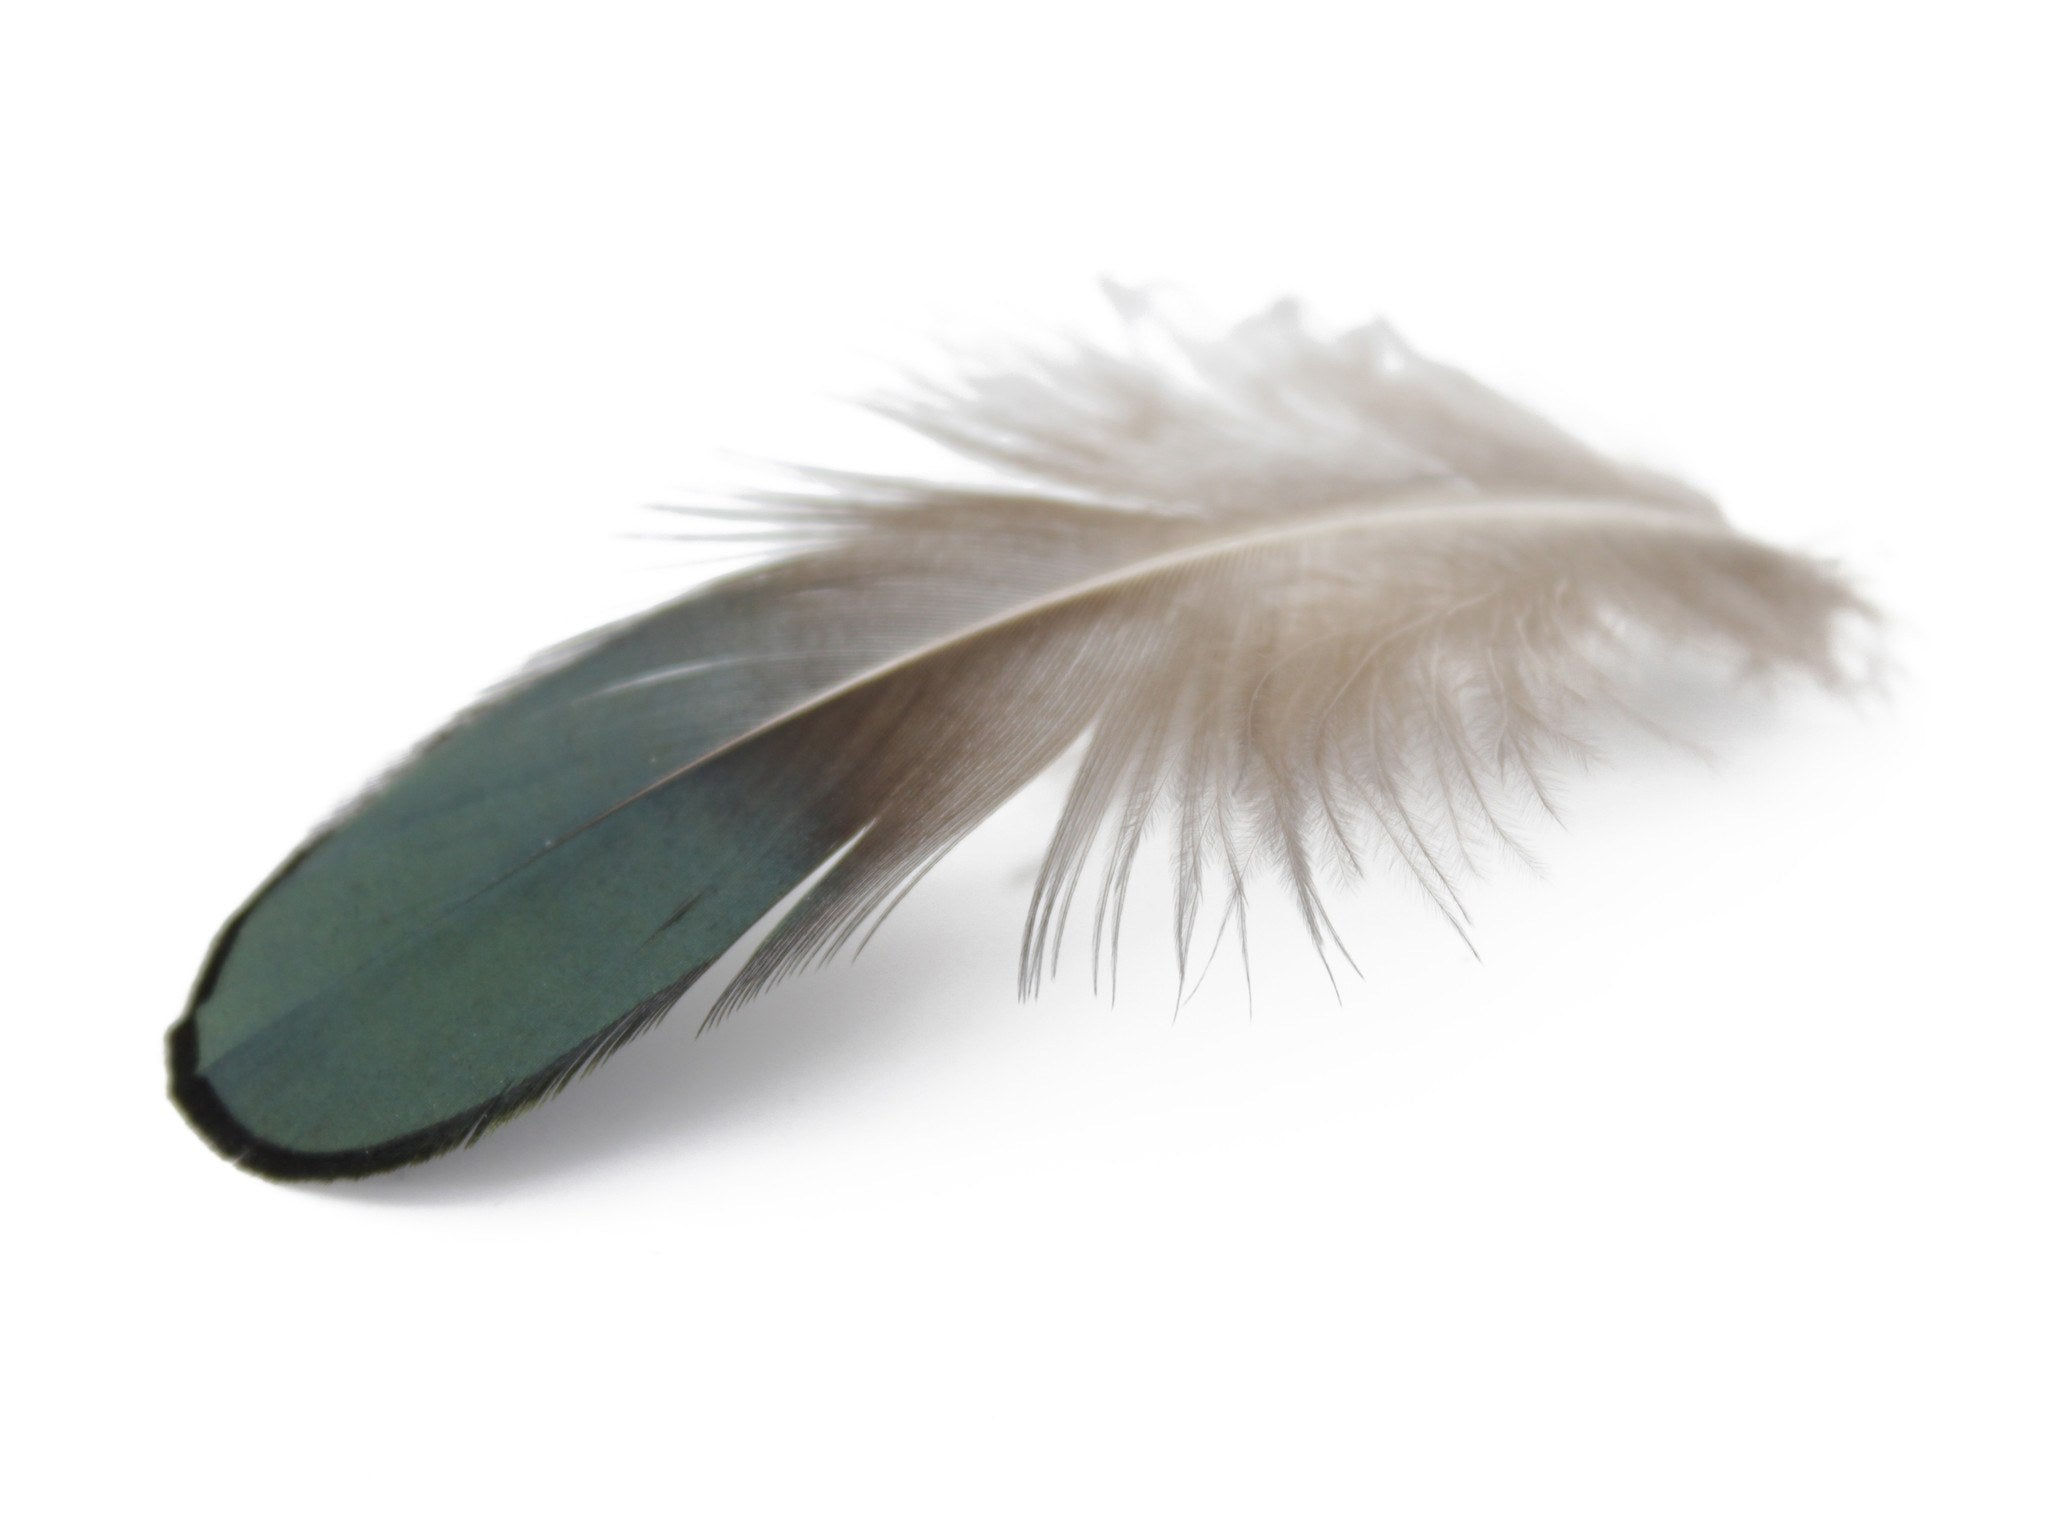 How to clean pheasant feathers - Lady Amherst Pheasant Green Plumage Feathers